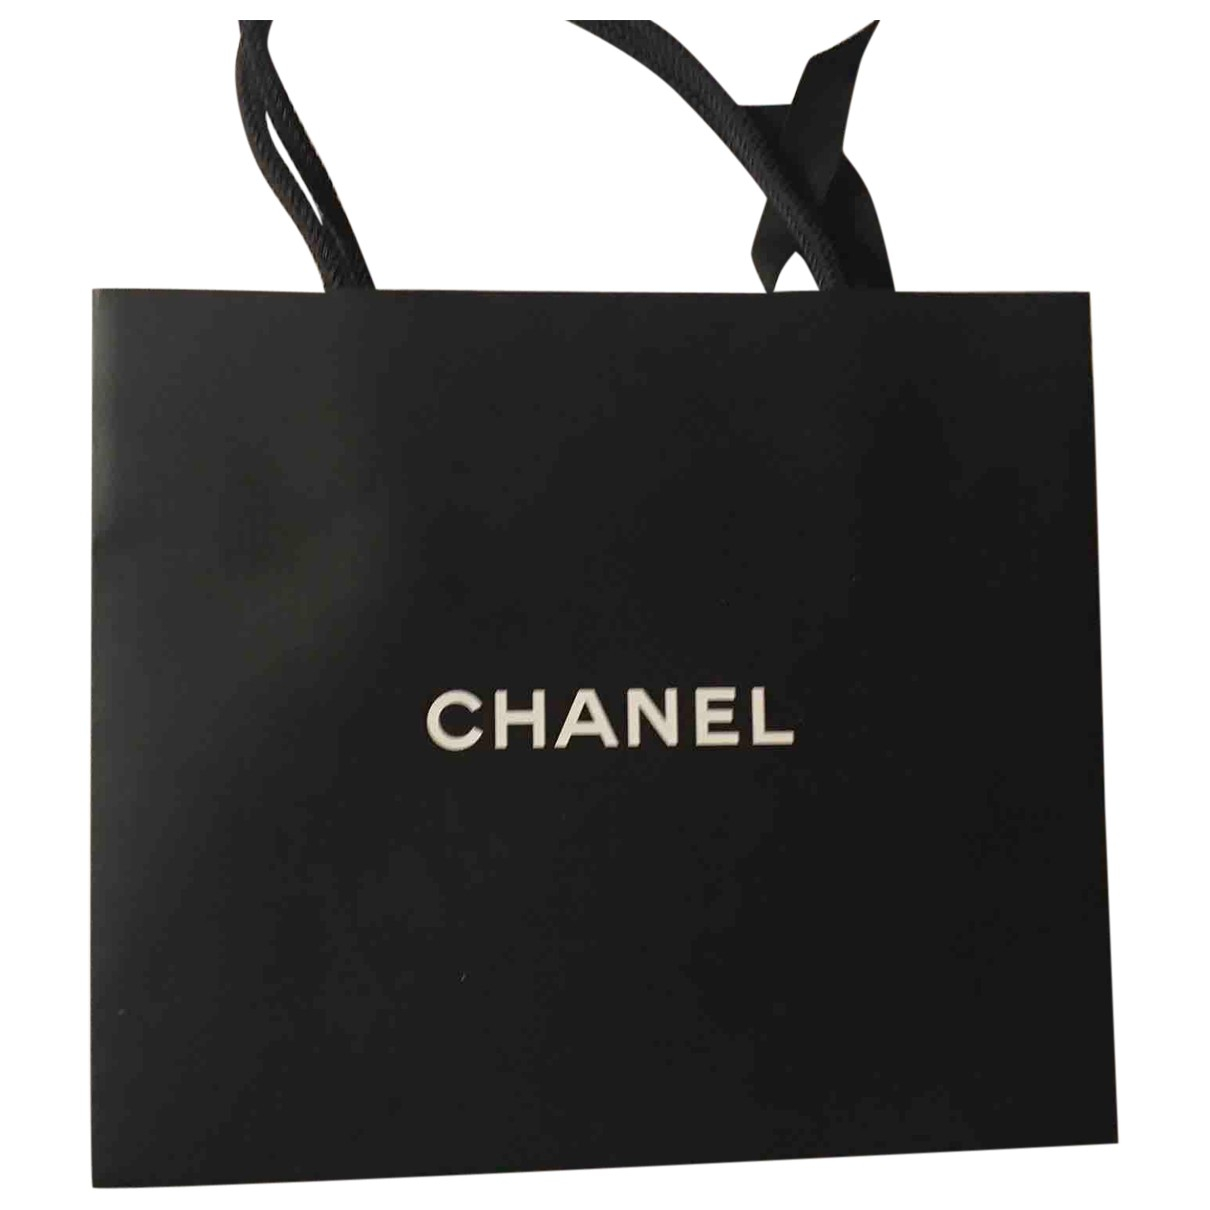 Chanel N Black Cotton Home decor for Life & Living N